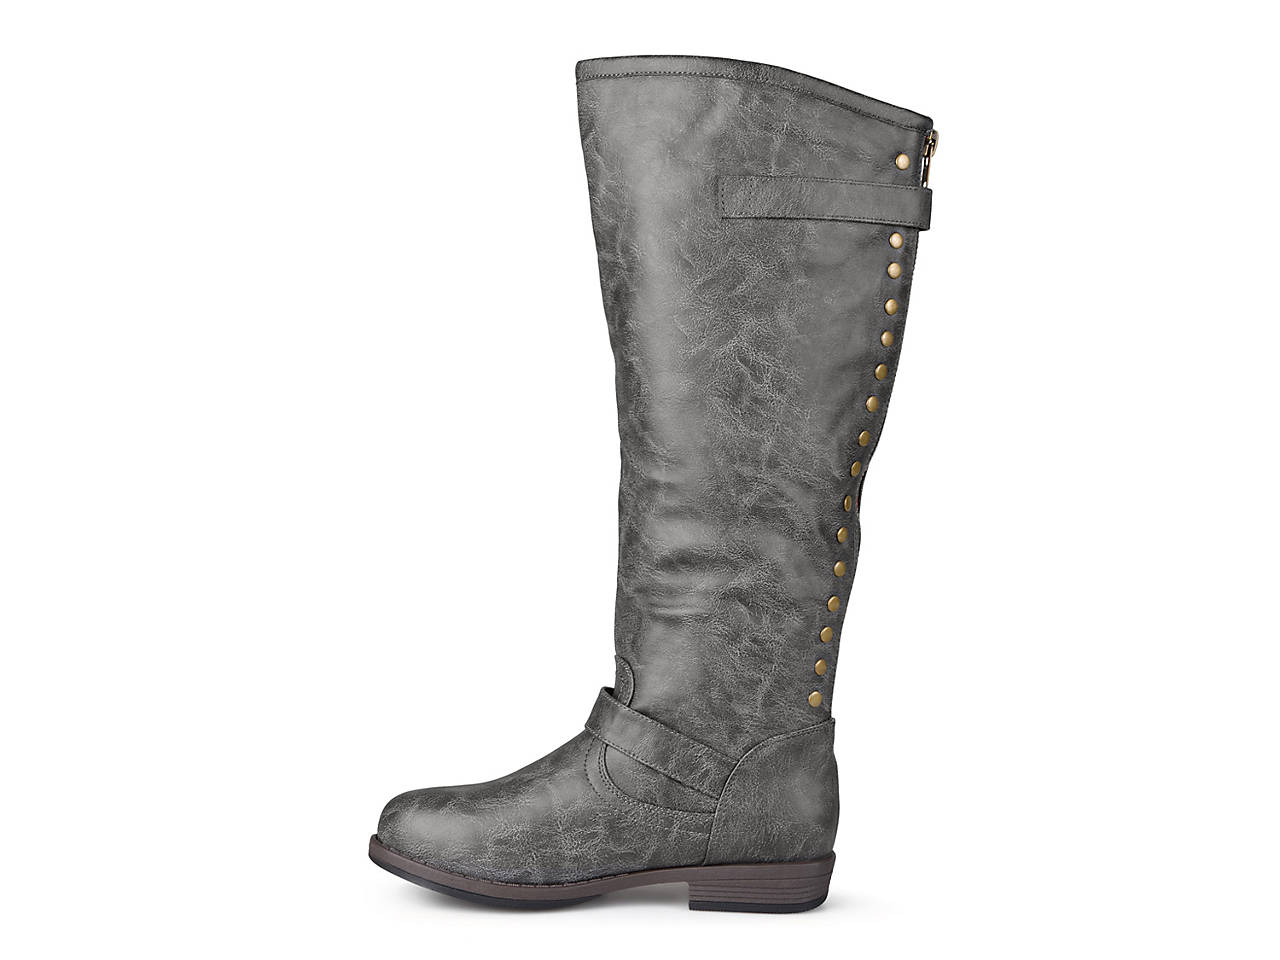 Journee Collection Spokane Extra Wide Calf Riding Boot Women's ...